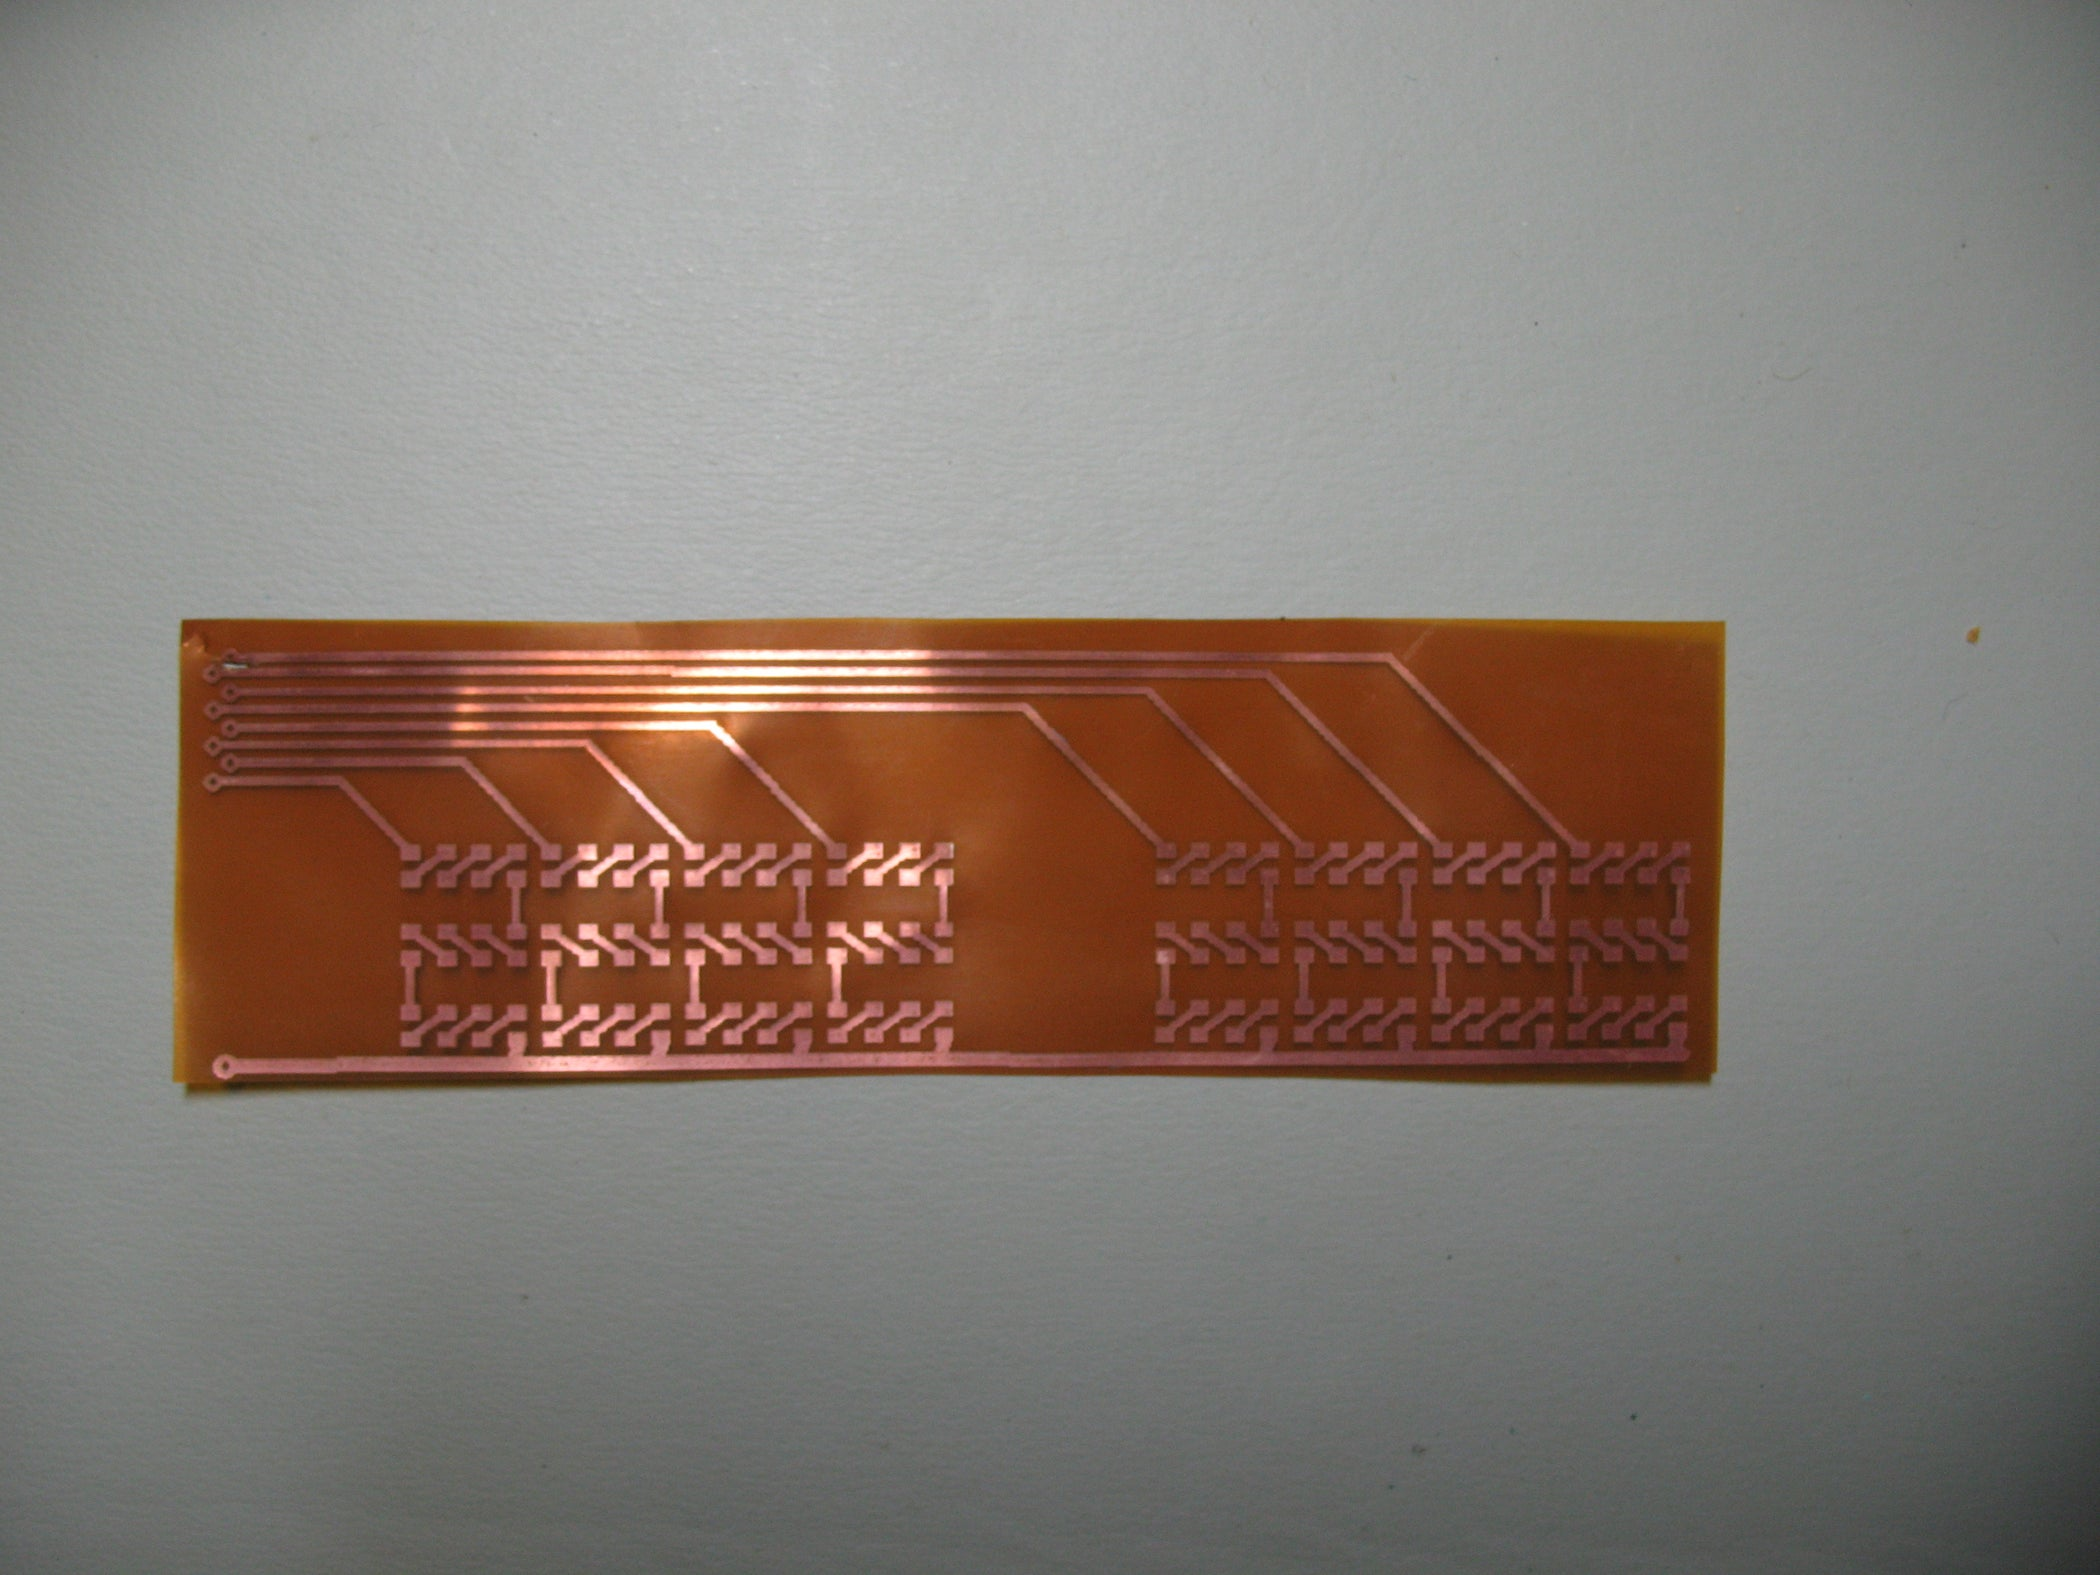 Diy Flexible Printed Circuits 5 Steps With Pictures Build Your Own Circuit Board A Computer Pinterest